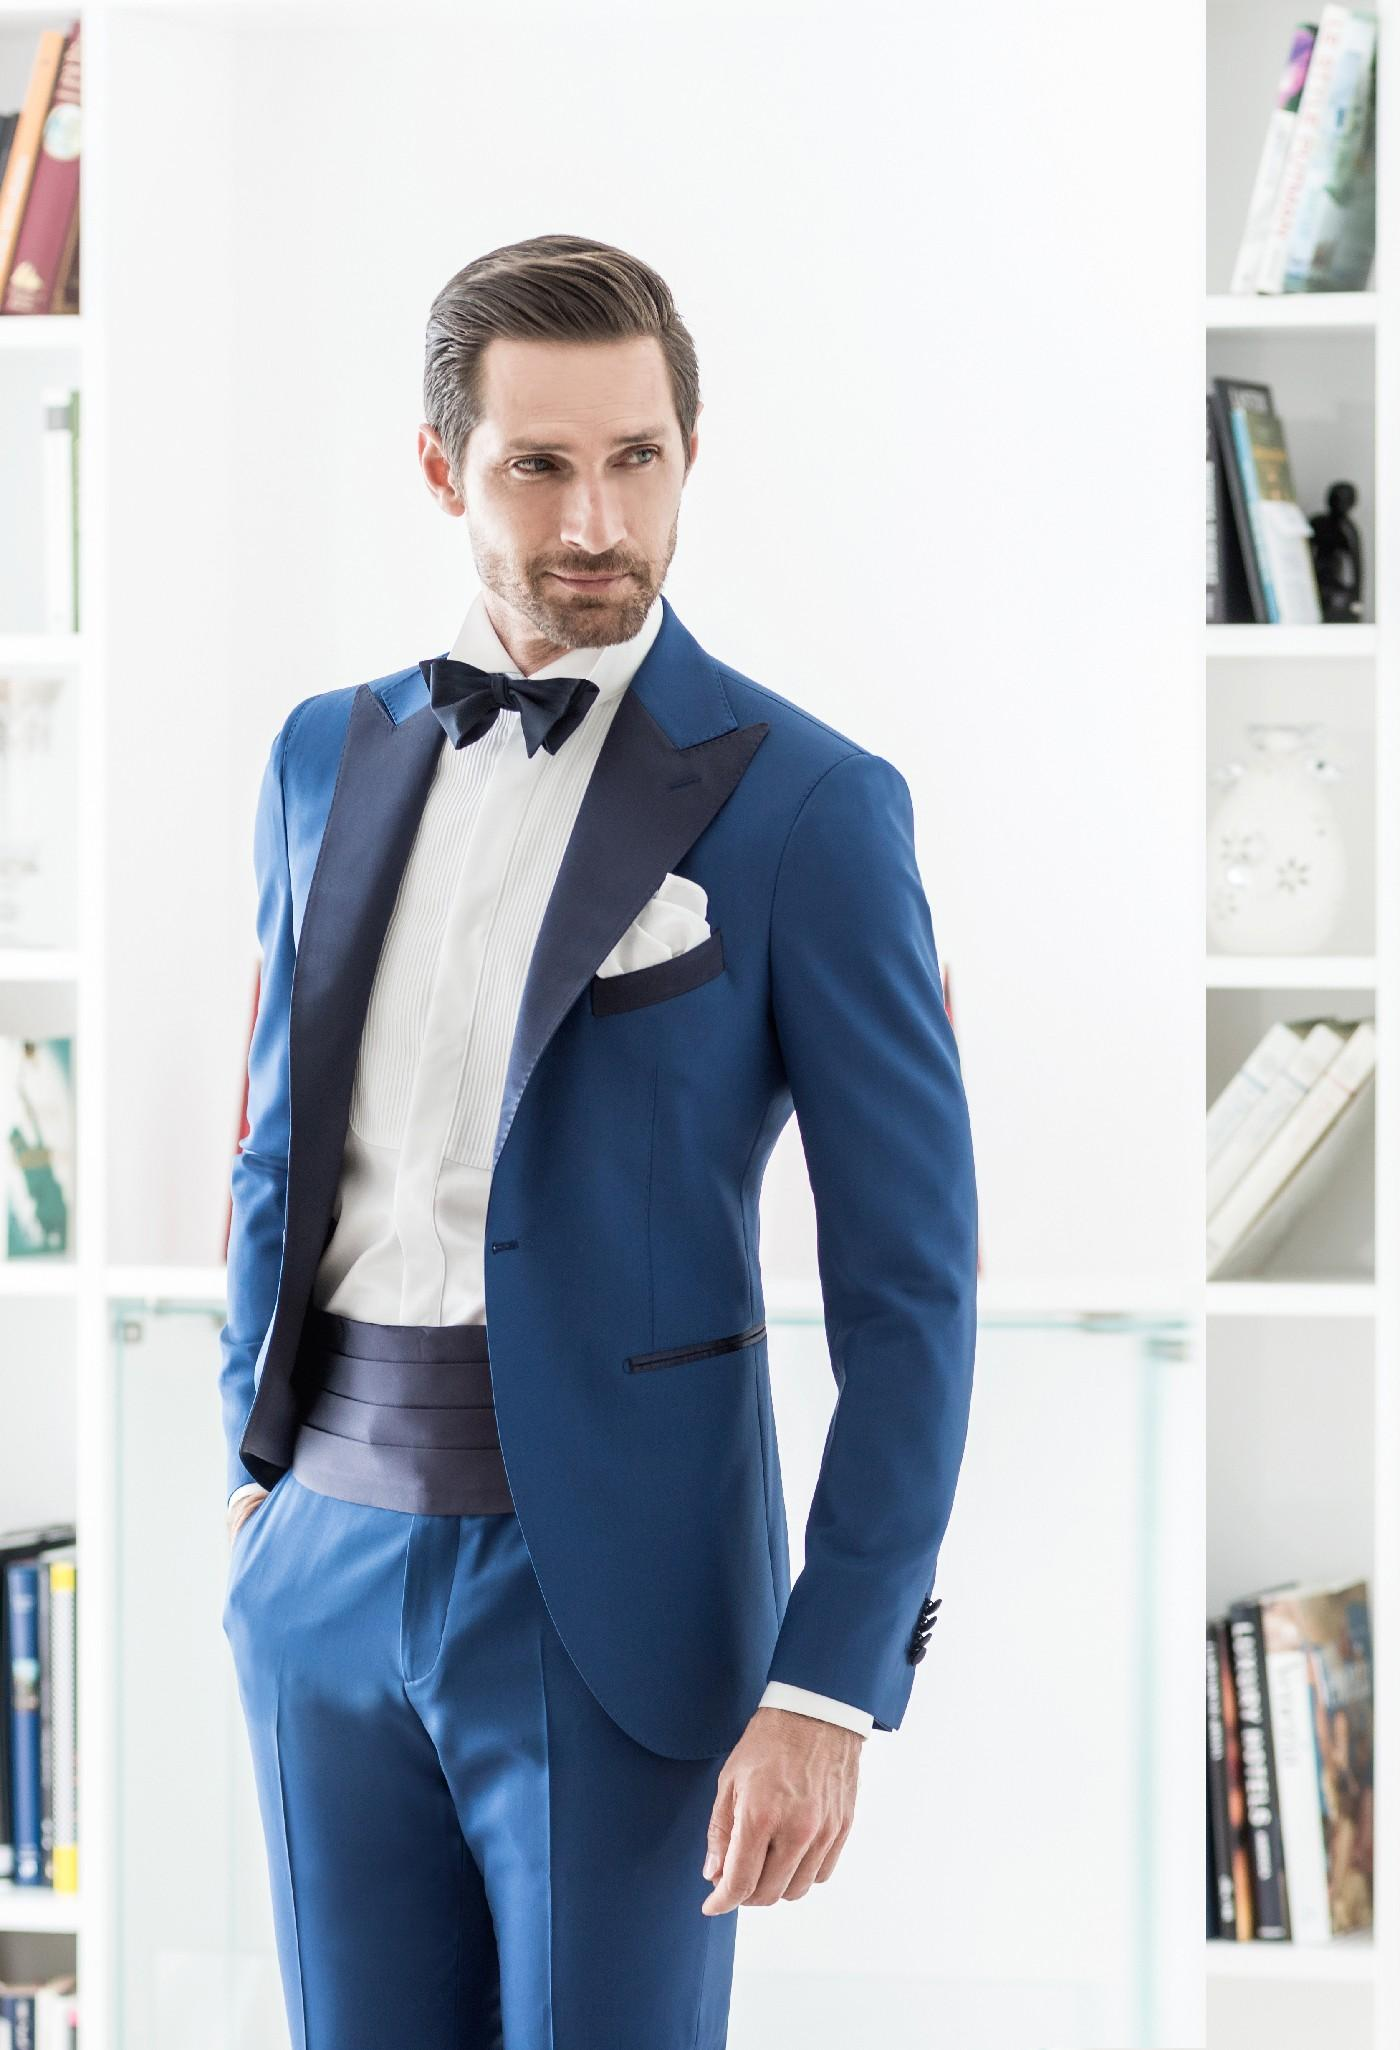 Find and save ideas about Men wedding suits on Pinterest. | See more ideas about Groom attire, Wedding men and Wedding suits for men. Men's fashion. Men's suits Men wedding suits Light Blue Linen Men Suits For Beach Wedding 3 Piece Groom Tuxedos Groomsman Attire Best Man Suit(Jacket+Pants+Vest)terno